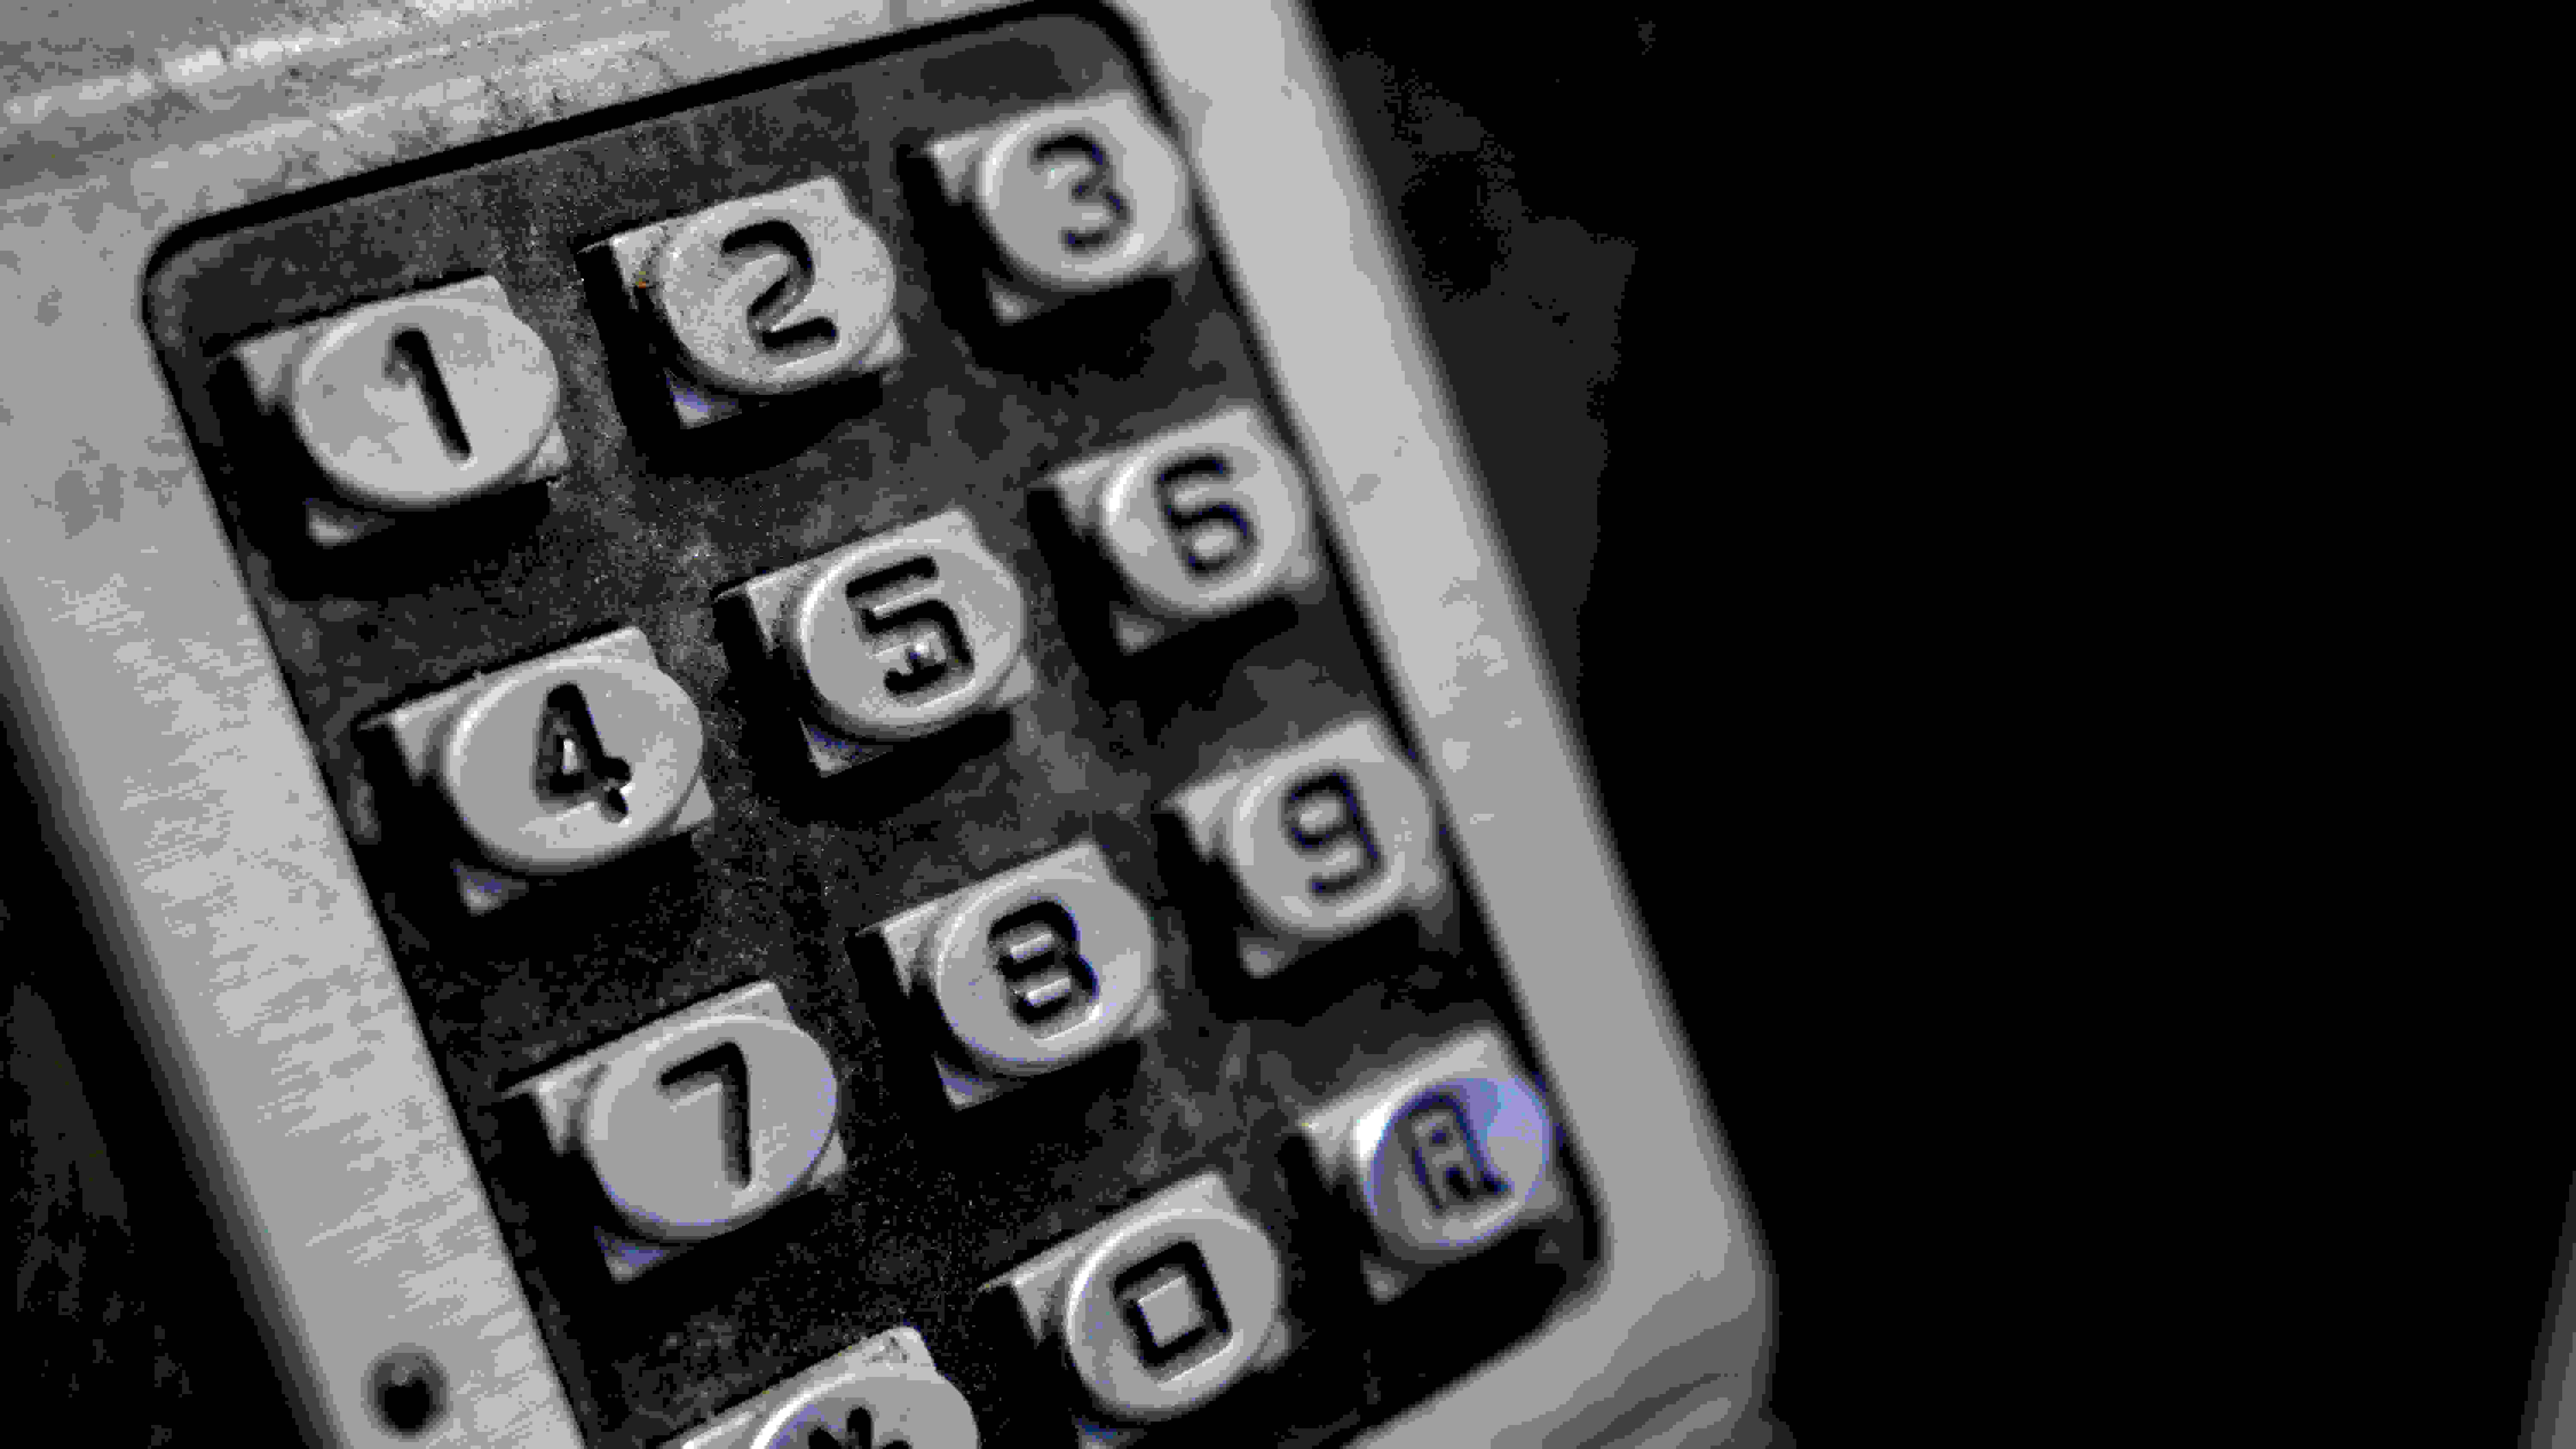 The 16-50mm lens isn't a macro lens, but it lets you get close enough to pick up fine details like the dirty on this keypad.